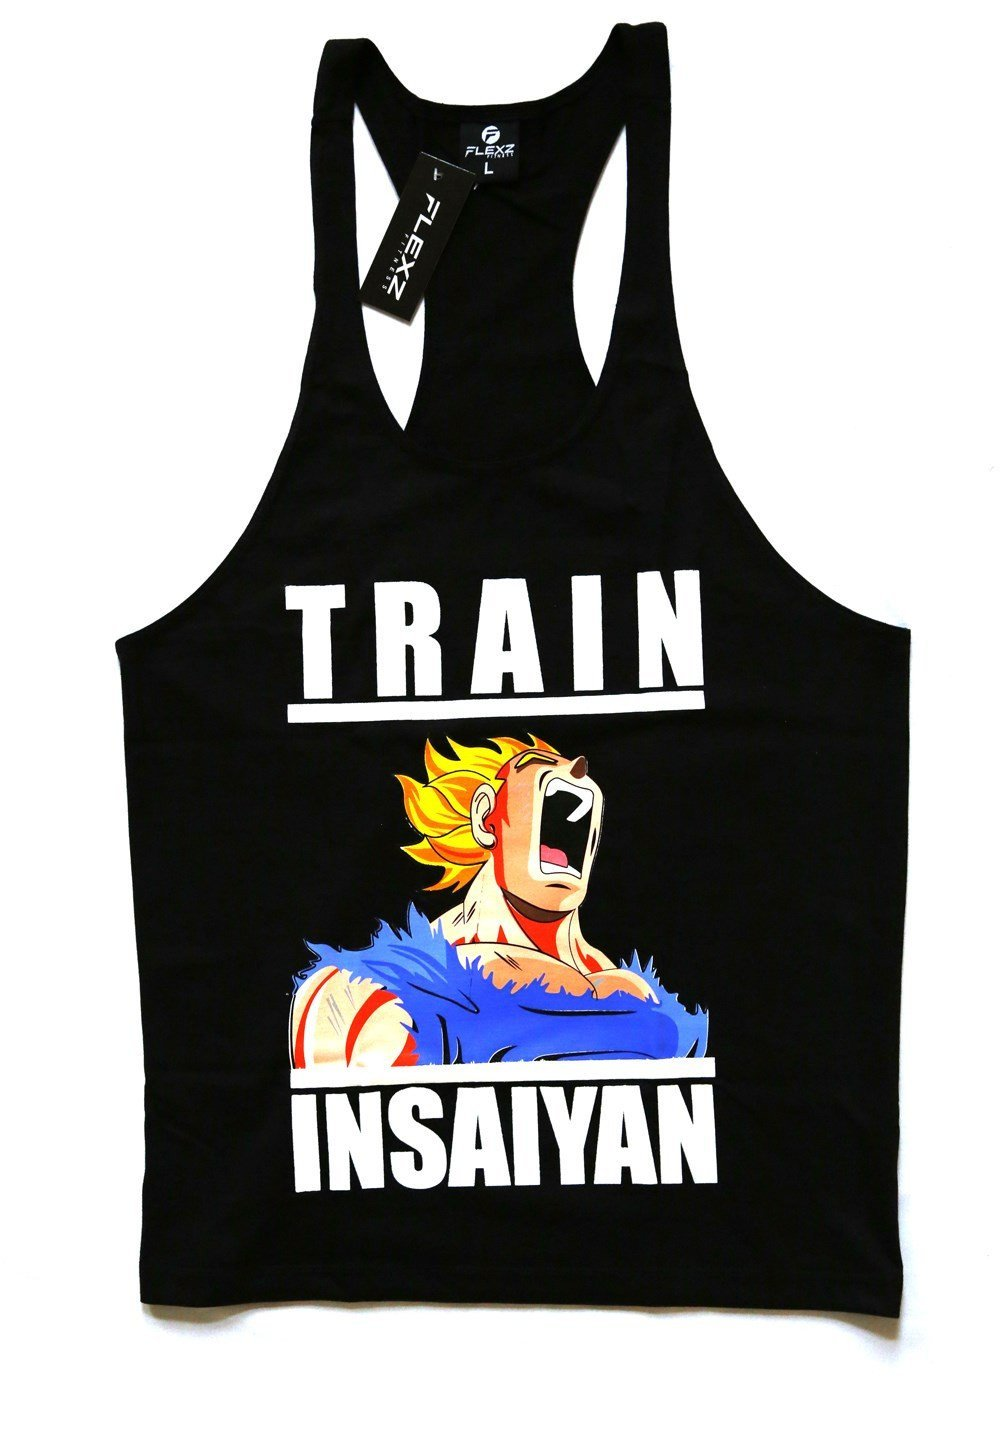 b4b6ee17ca231 TRAIN INSAIYAN Singlet Stringer Vest Bodybuilding